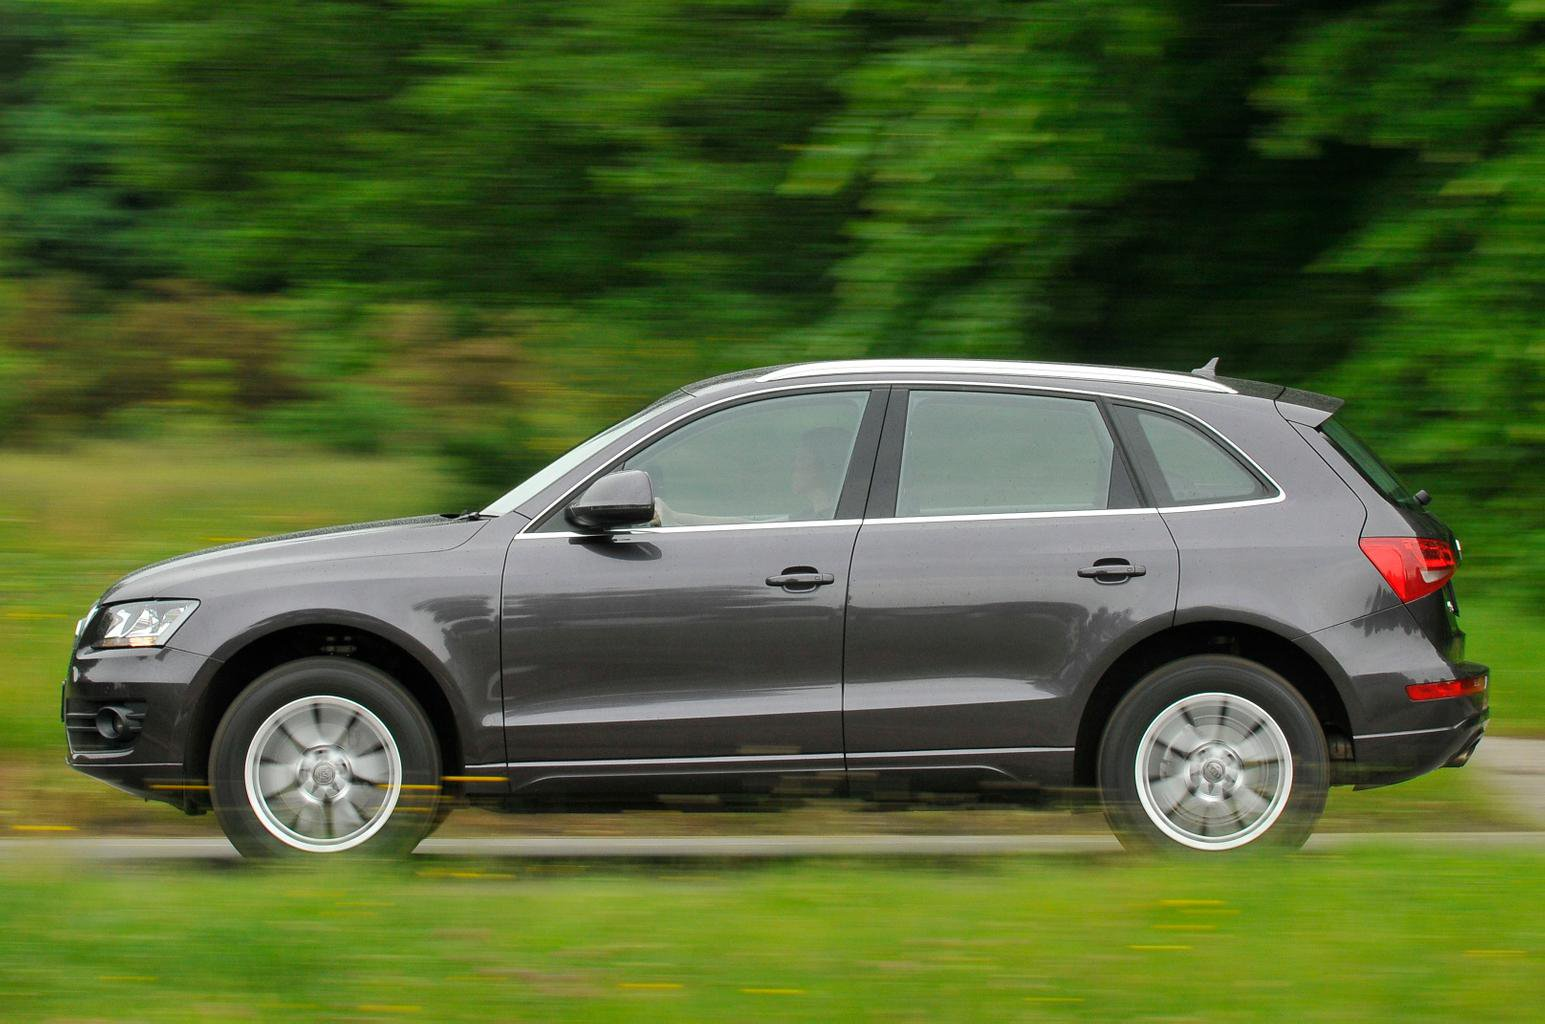 Used test – SUV vs estate: Audi Q5 vs Volkswagen Passat Alltrack vs Volvo XC60